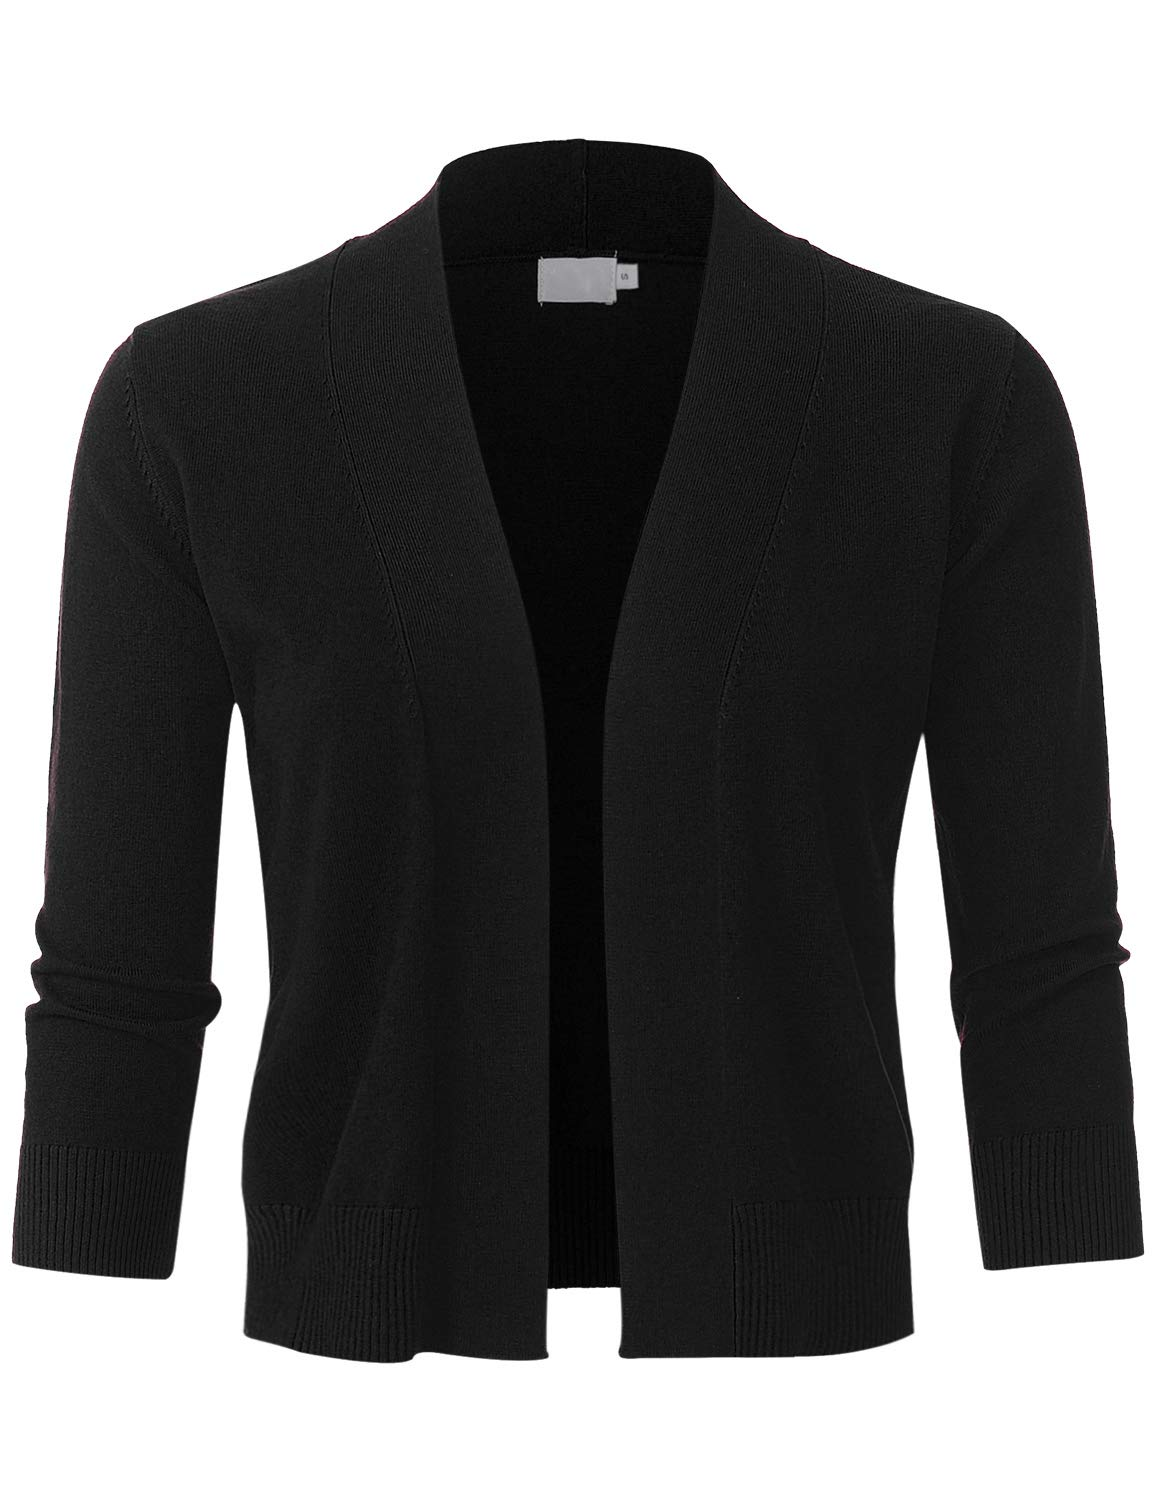 JSCEND Womens Classic 3/4 Sleeve Open Front Cropped Bolero Cardigan Black M by JSCEND